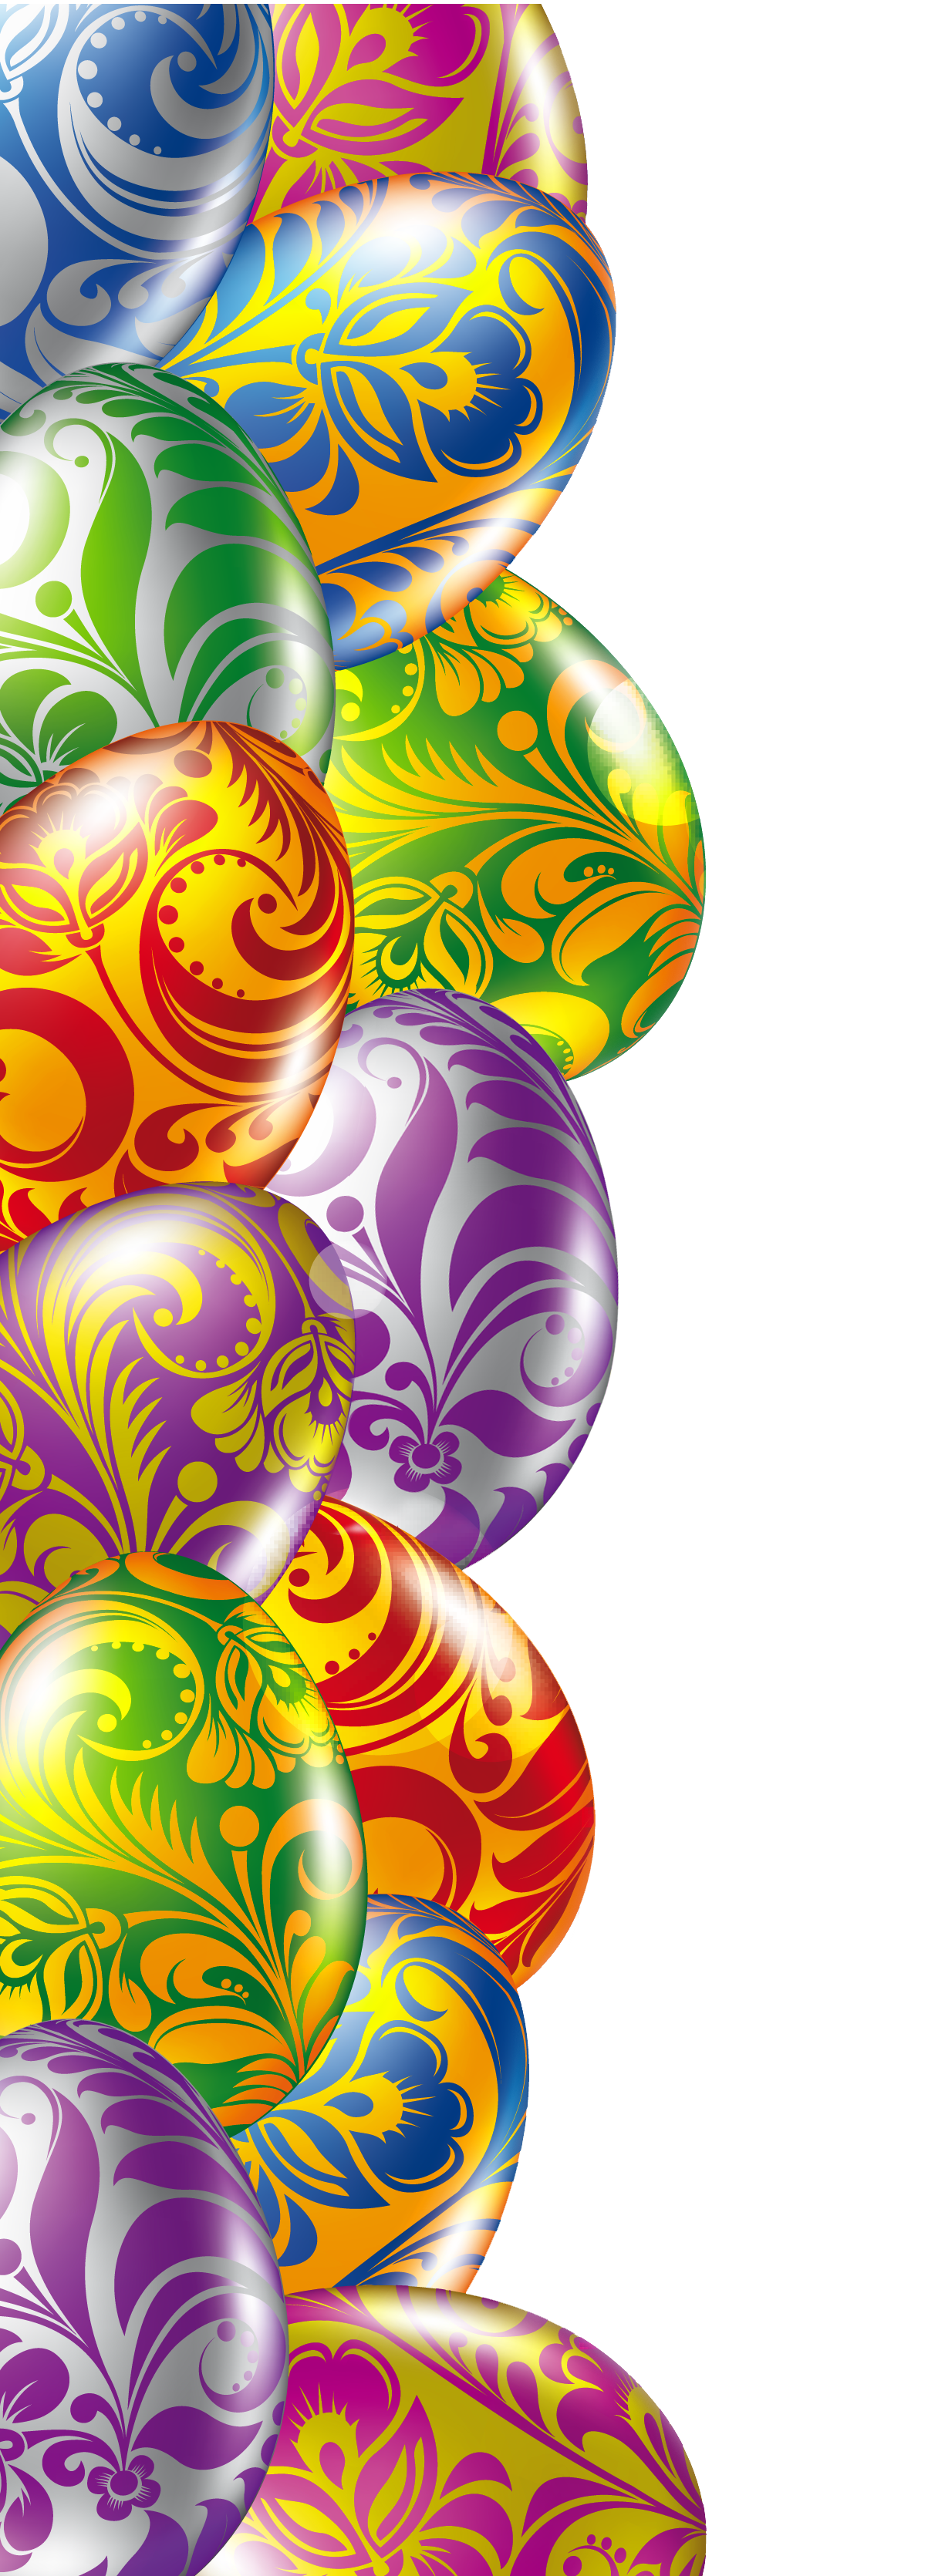 Easter egg clipart frame clipart royalty free Easter Eggs Border Transparent PNG Picture | Crafting - Easter Theme ... clipart royalty free